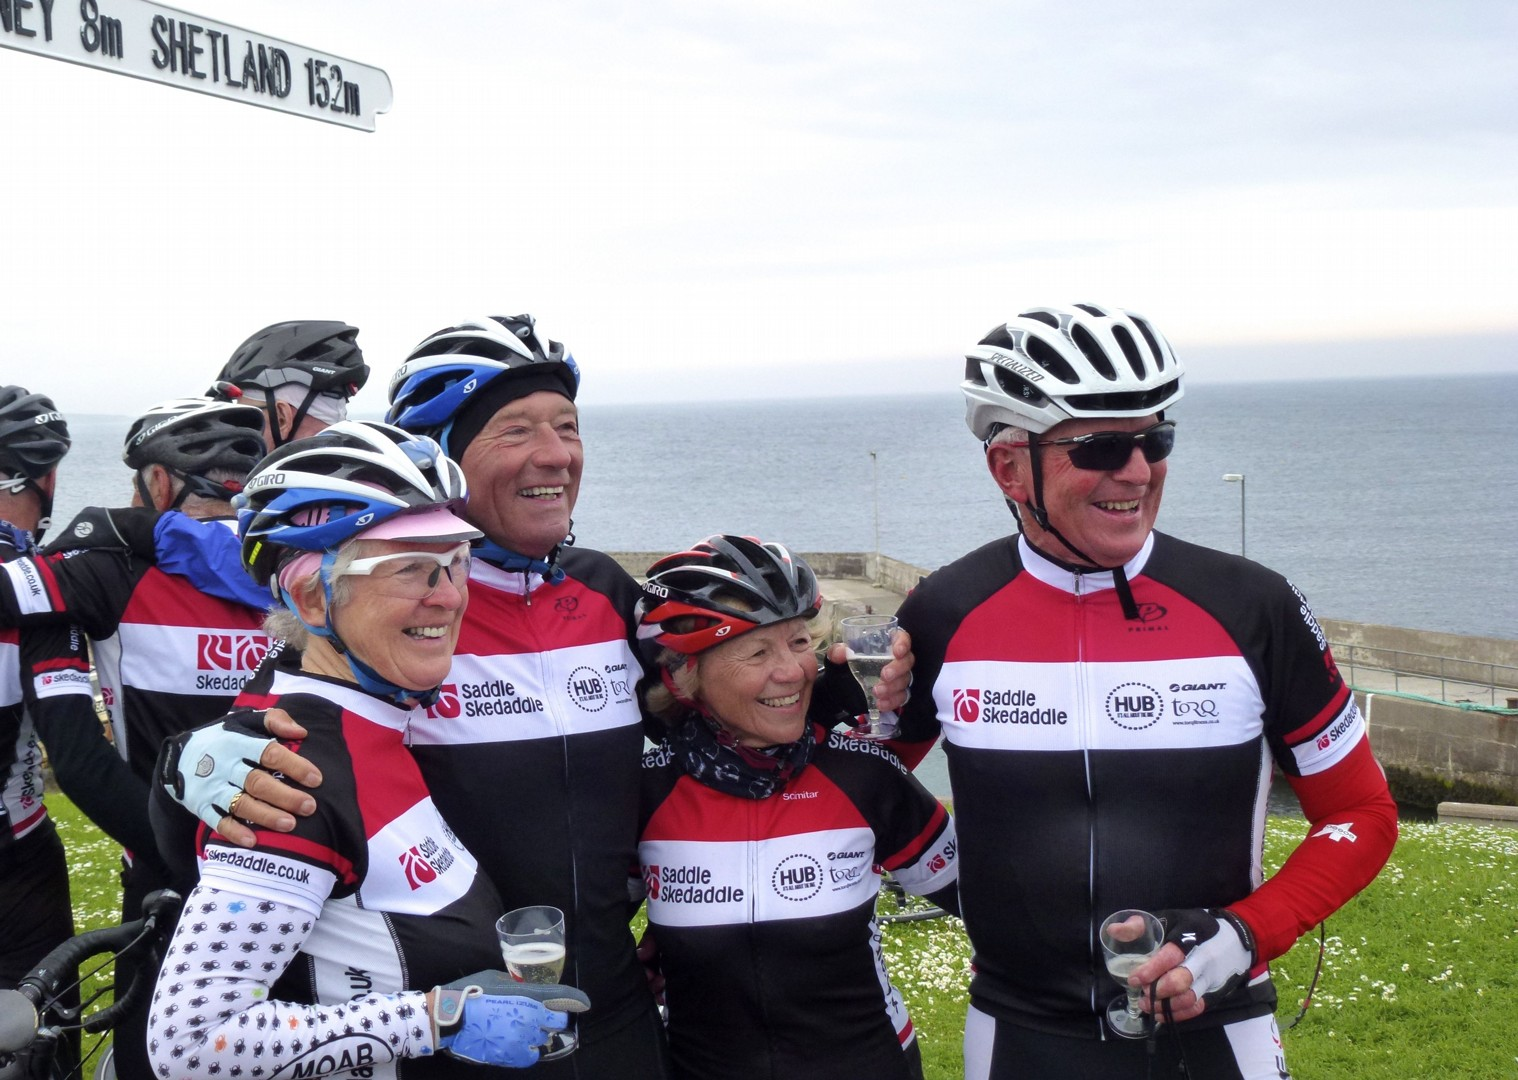 LEJOG3.jpg - UK - Land's End to John O'Groats Classic (16 days) - Guided Road Cycling Holiday - Road Cycling